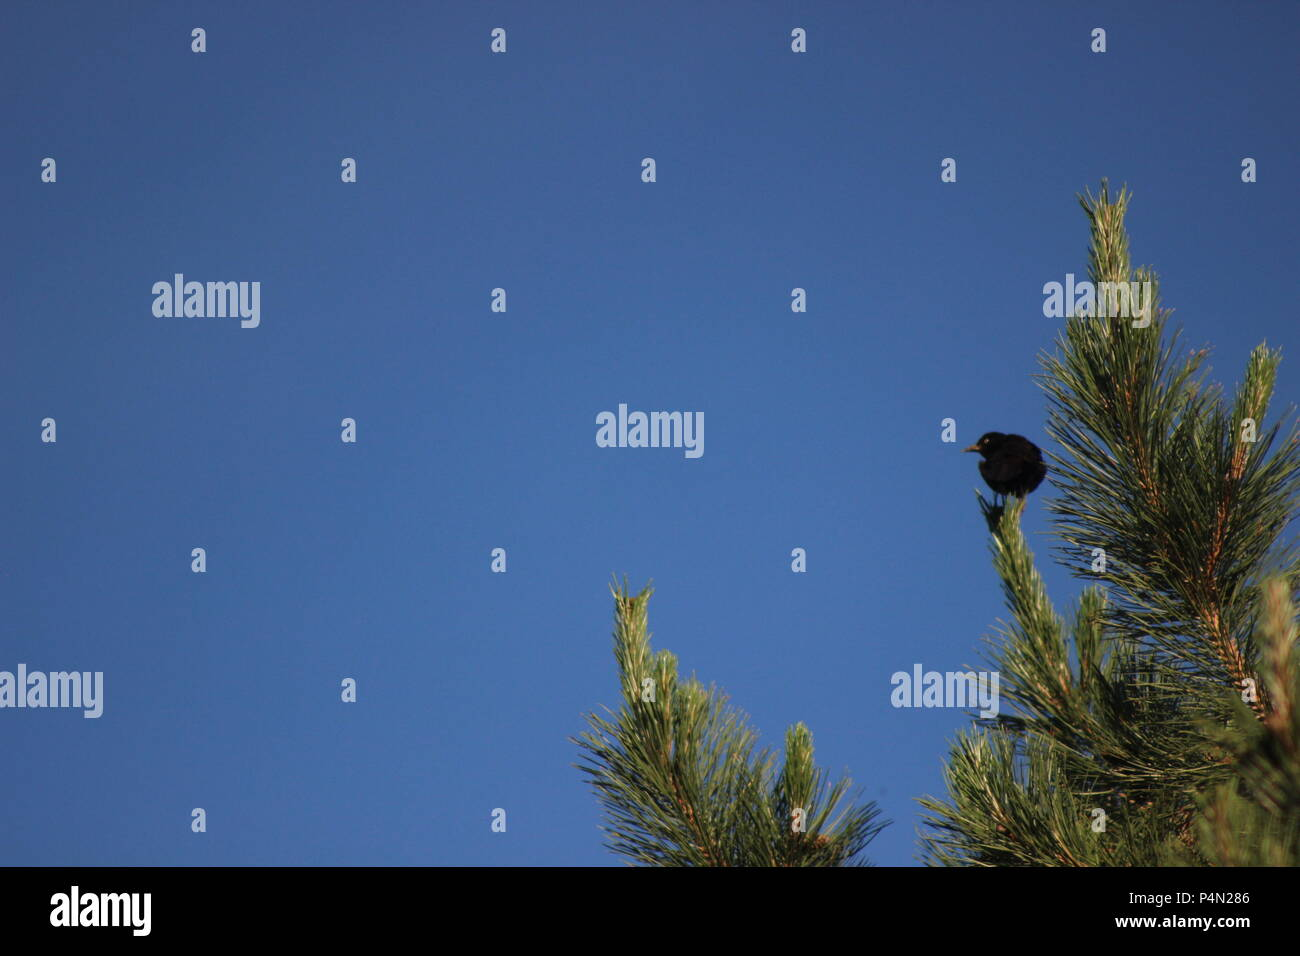 A small black bird perches up on the tops of a pine tree against a vibrant blue sky - Stock Image